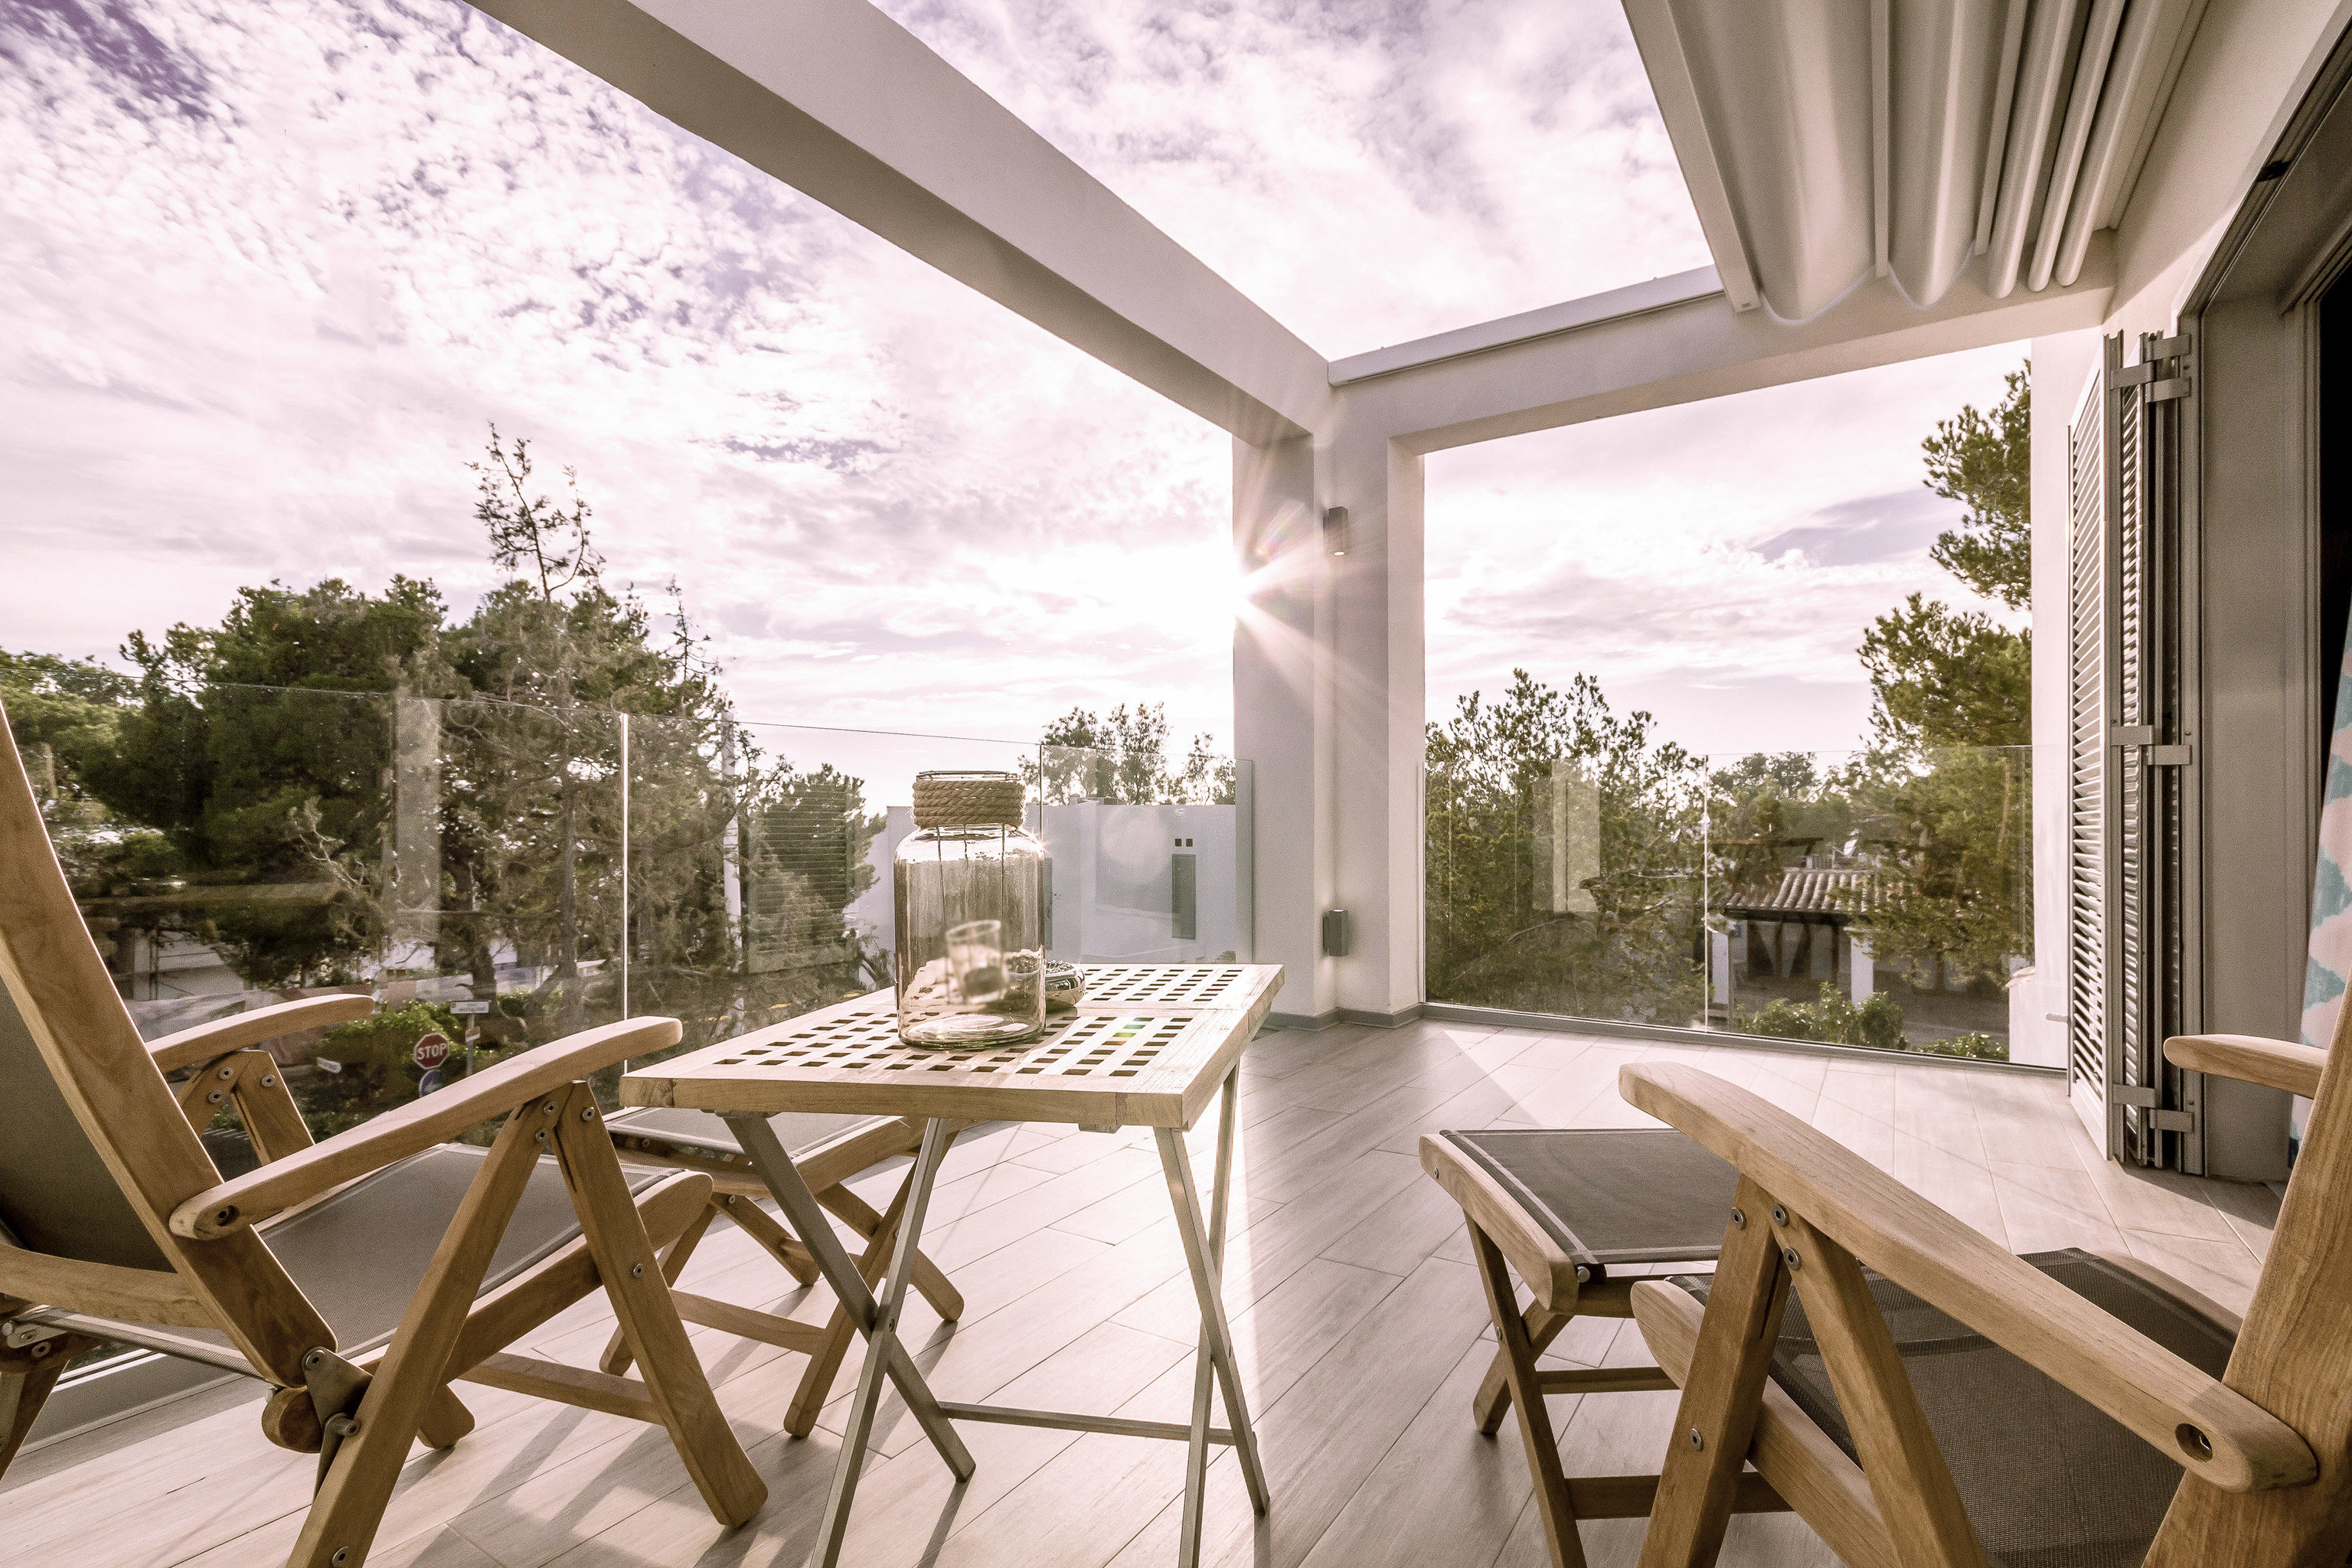 europe Trip Ideas chair indoor property Architecture estate interior design home real estate window house Balcony Patio porch outdoor structure apartment daylighting Dining ceiling penthouse apartment furniture dining table